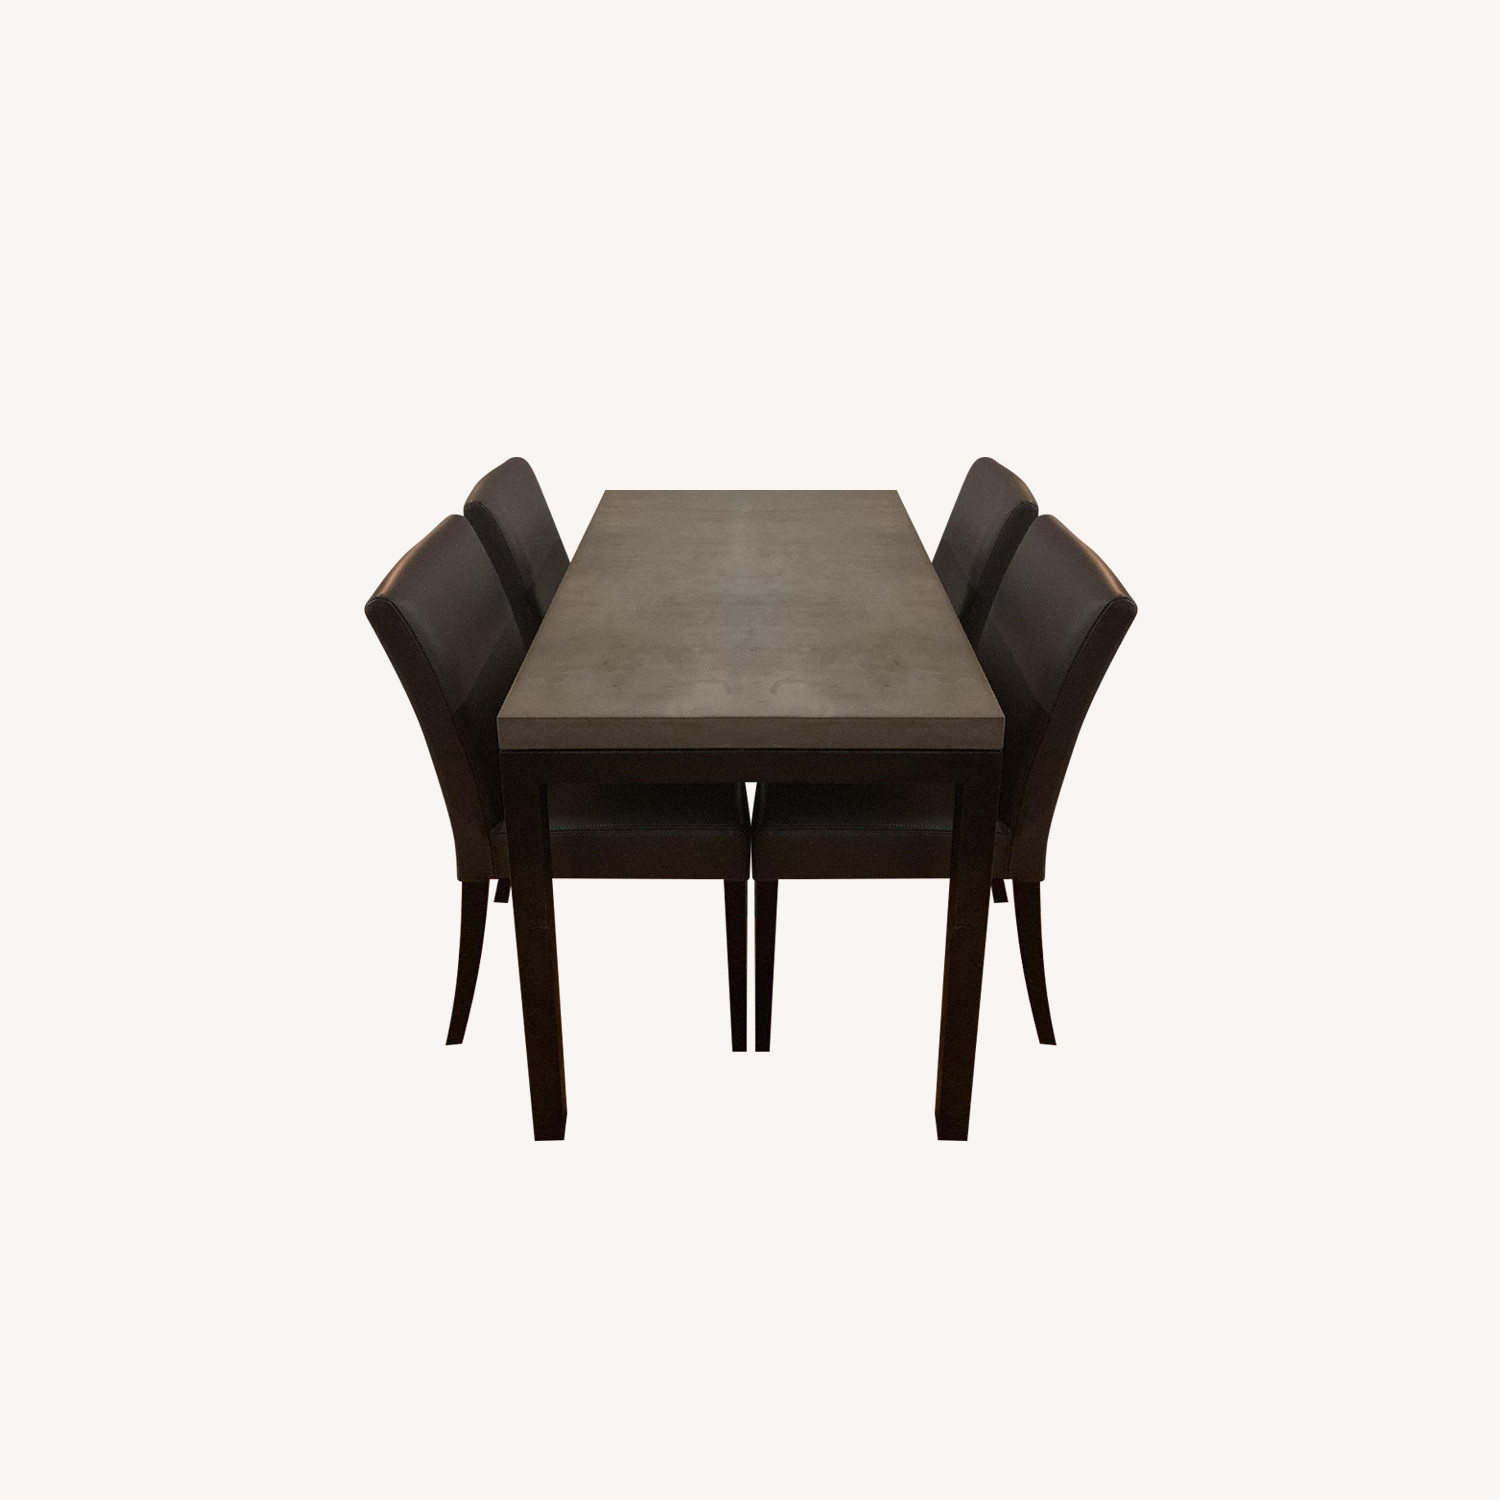 Crate & Barrel Dining Table w/ 4 Leather Chairs - AptDeco